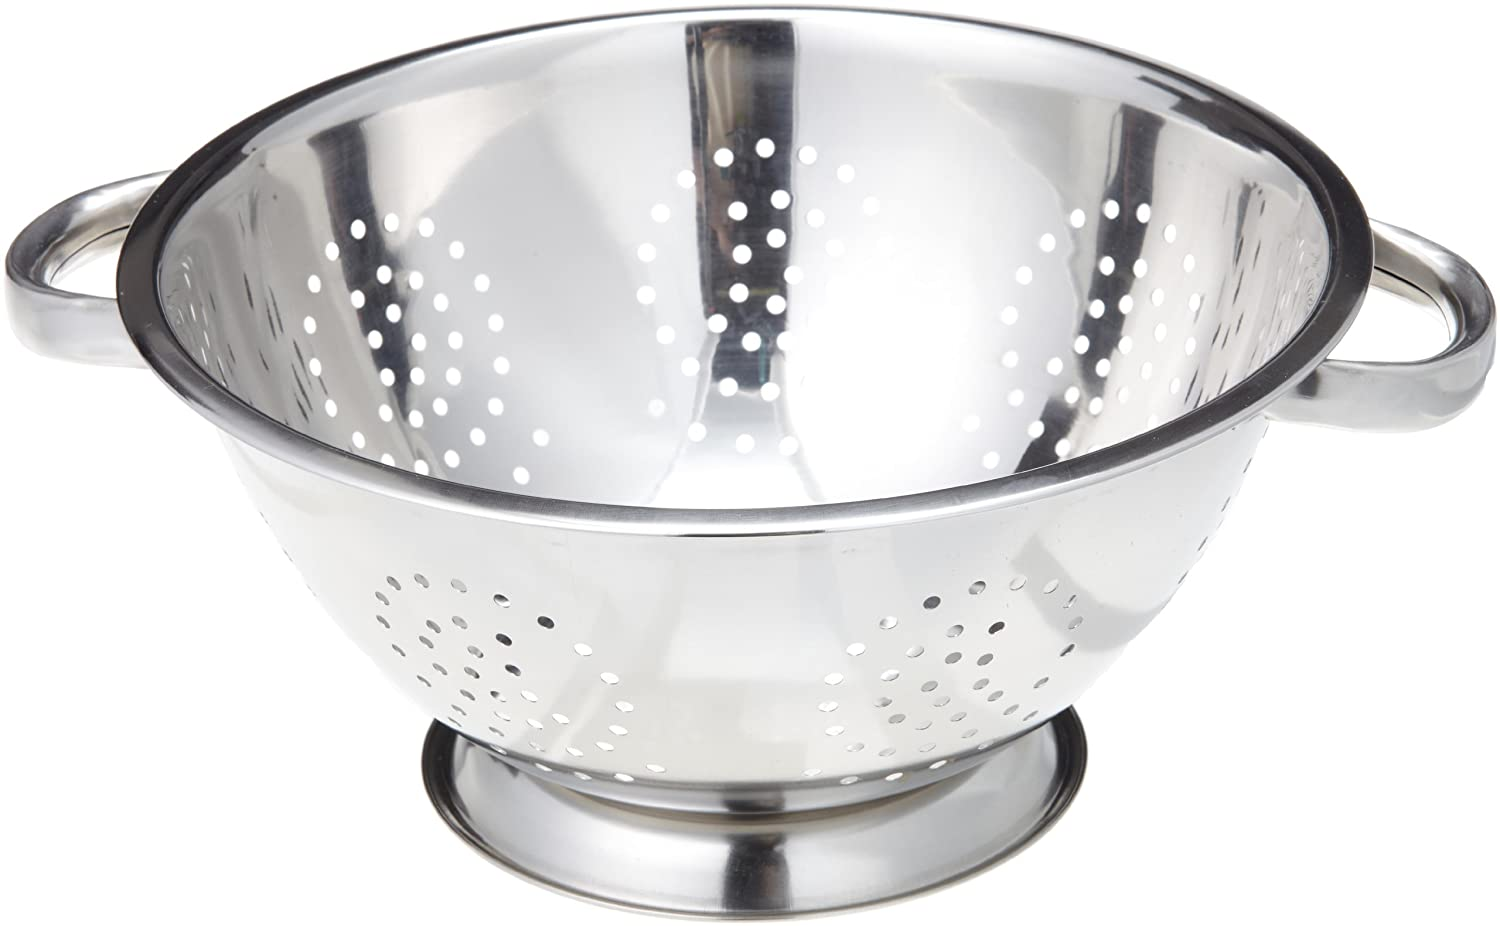 ExcelSteel 242 5-Quart Stainless Steel Colander Via Amazon